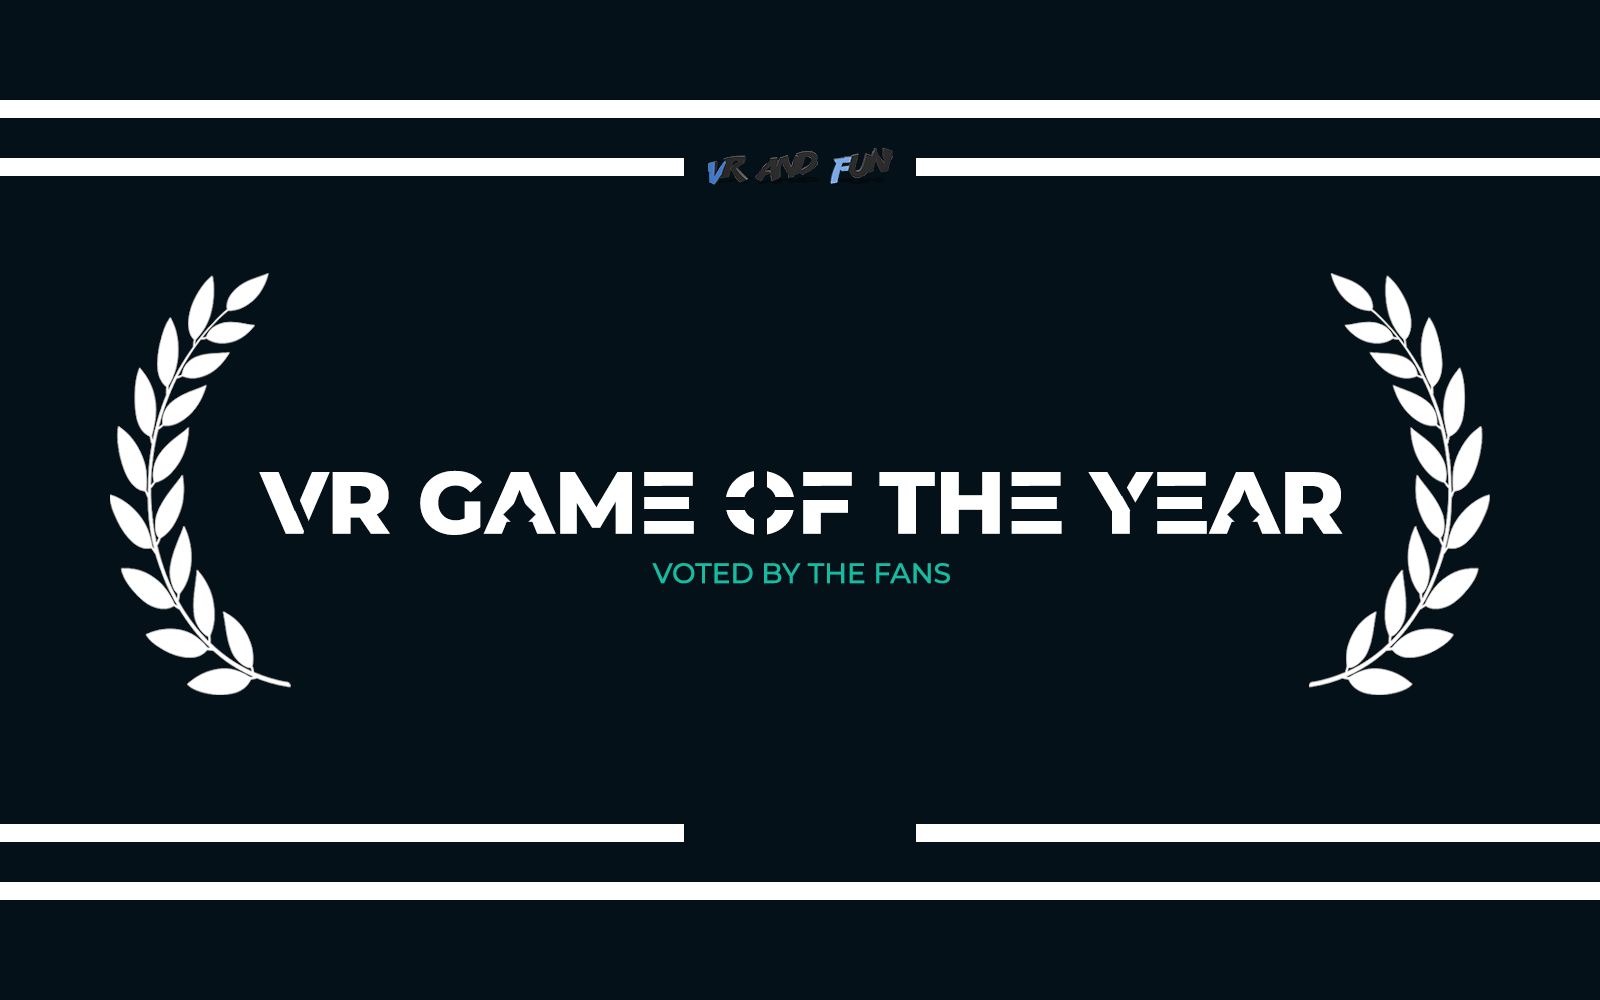 VR Game Of The Year 2017